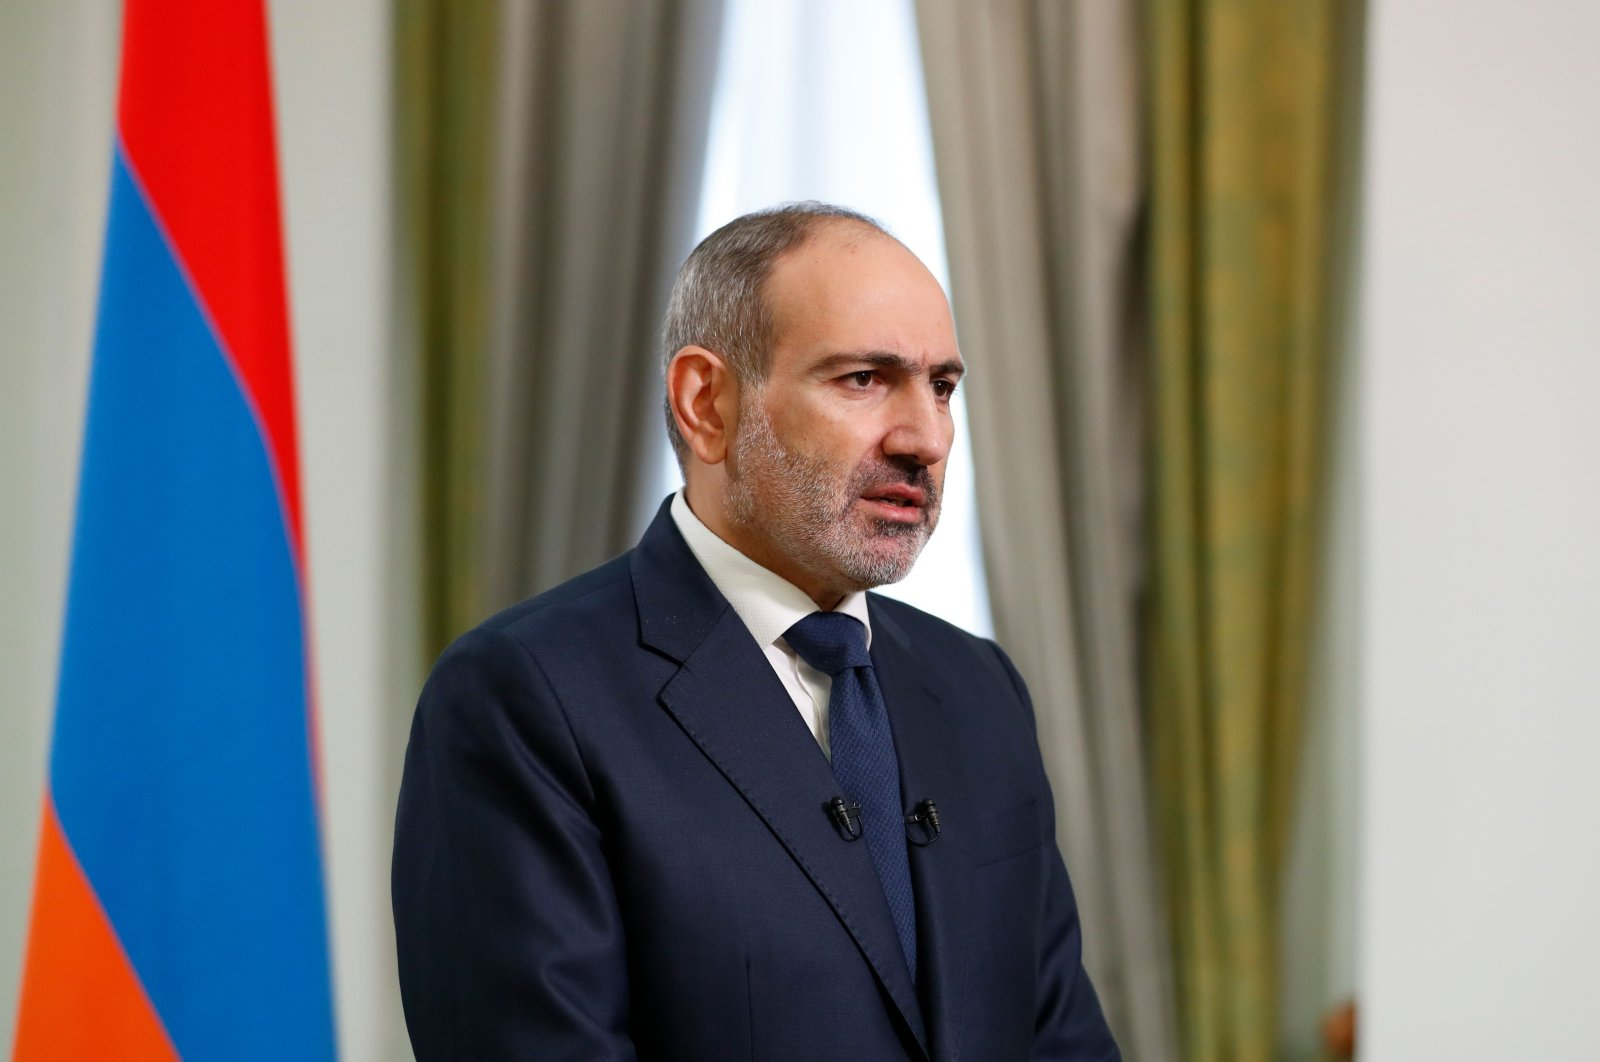 Armenian Prime Minister Nikol Pashinyan addressing the nation in Yerevan, Armenia, Nov. 12, 2020. (AFP)